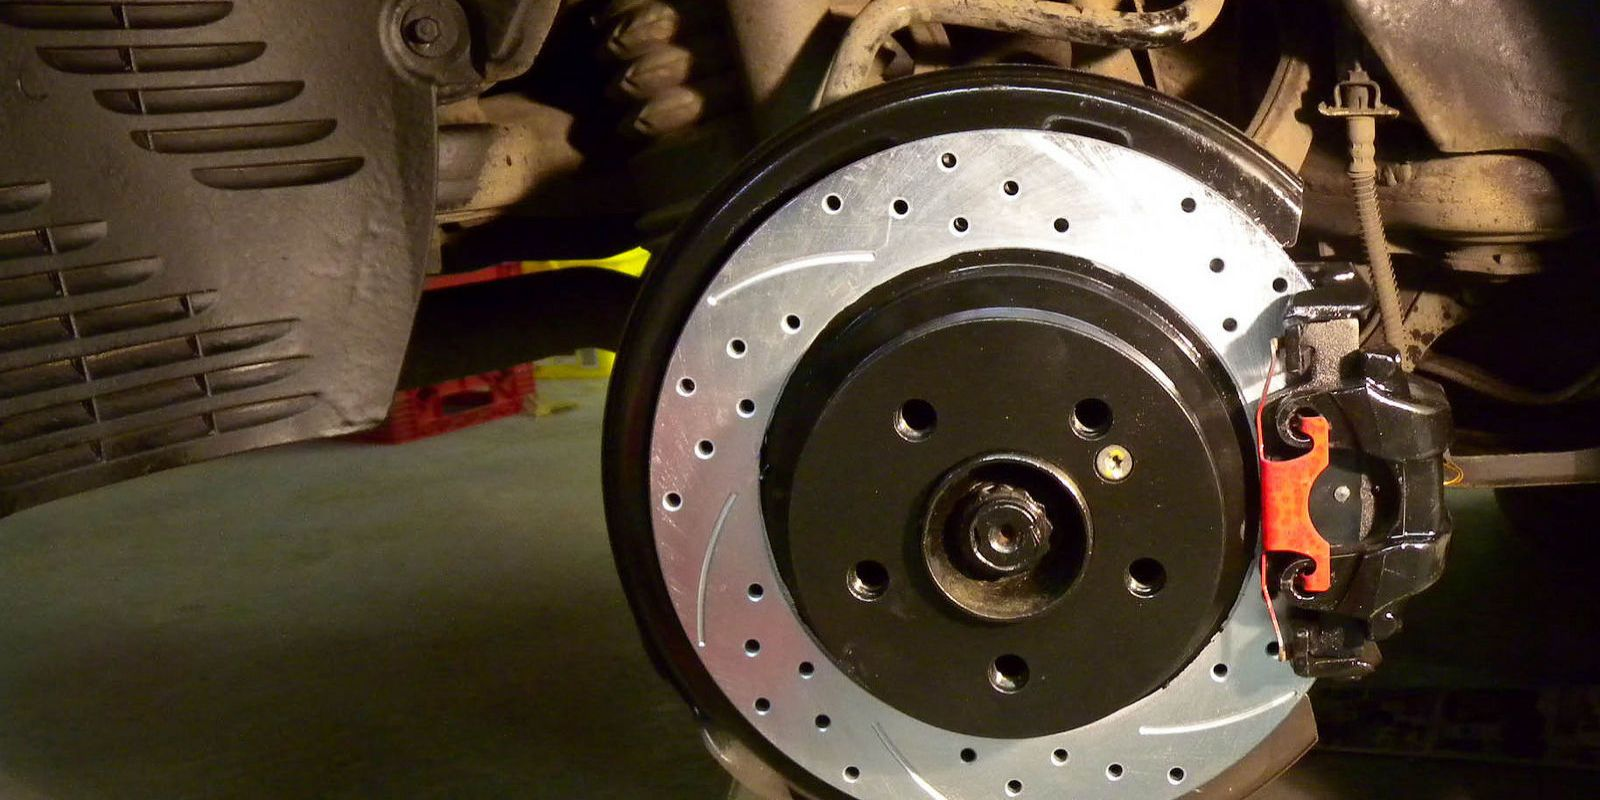 AntiLock Brakes  ABS Brakes Troubleshooting  How to